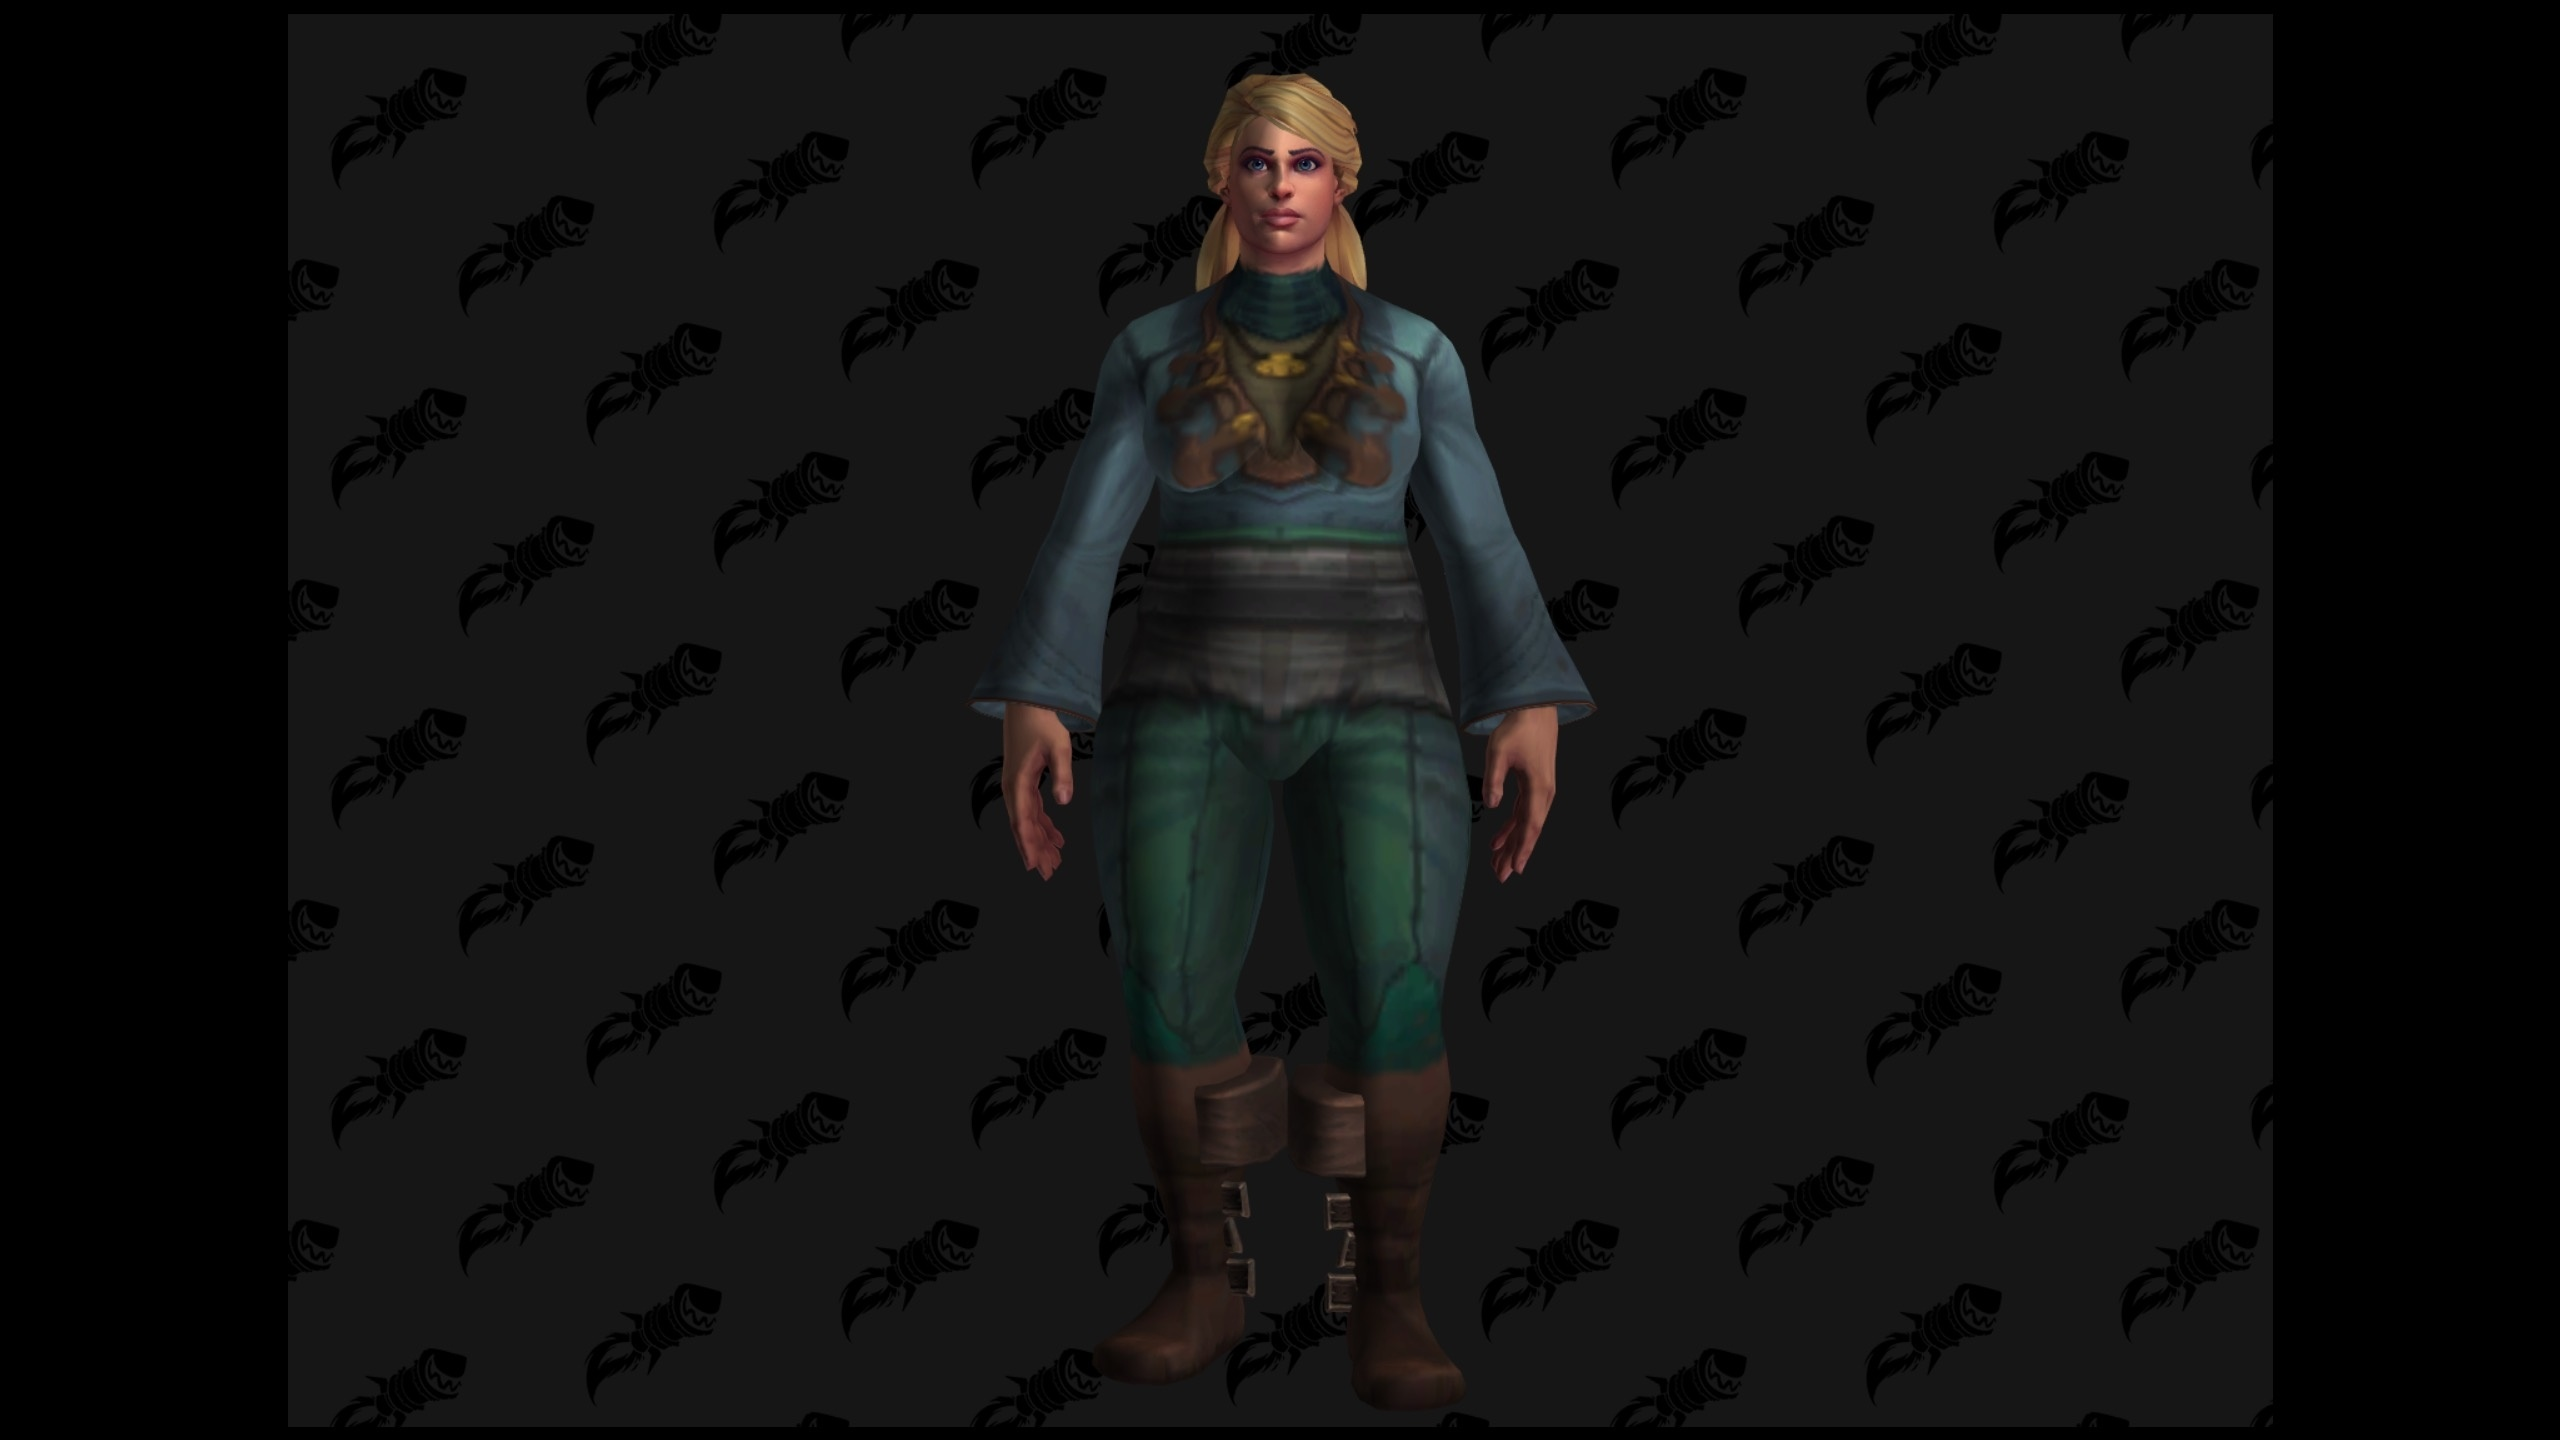 WoW BfA Human chubby female